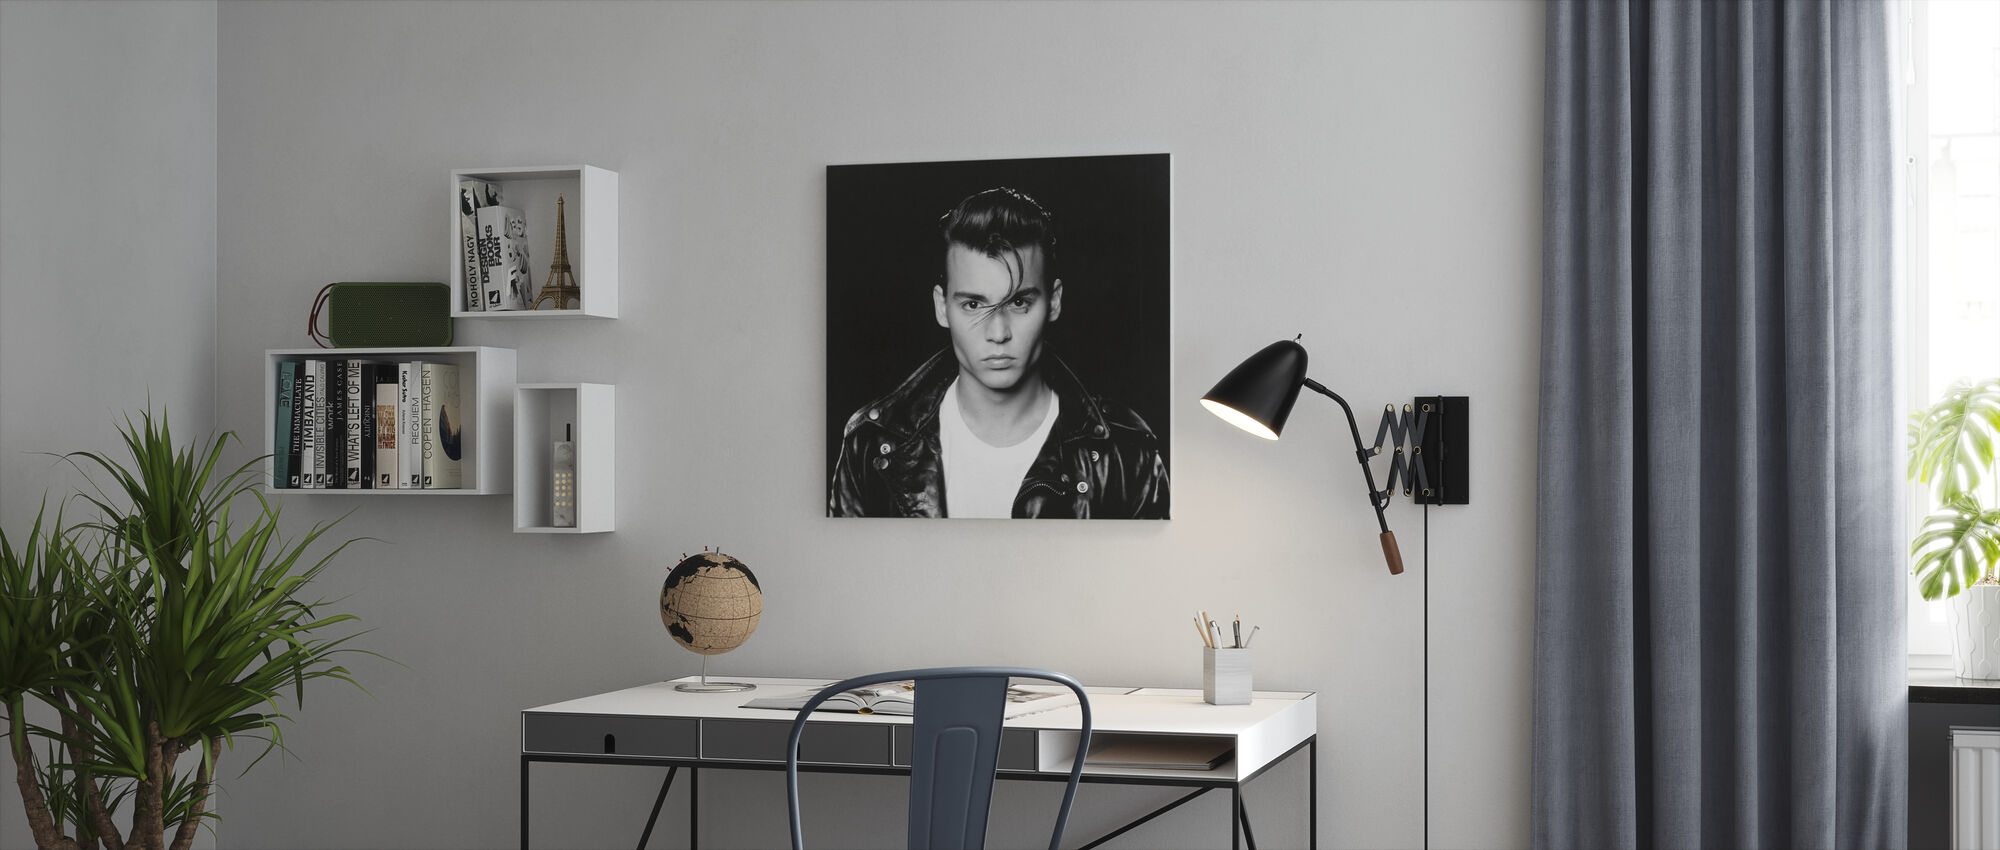 Johnny Depp in Crybaby - Canvas print - Office